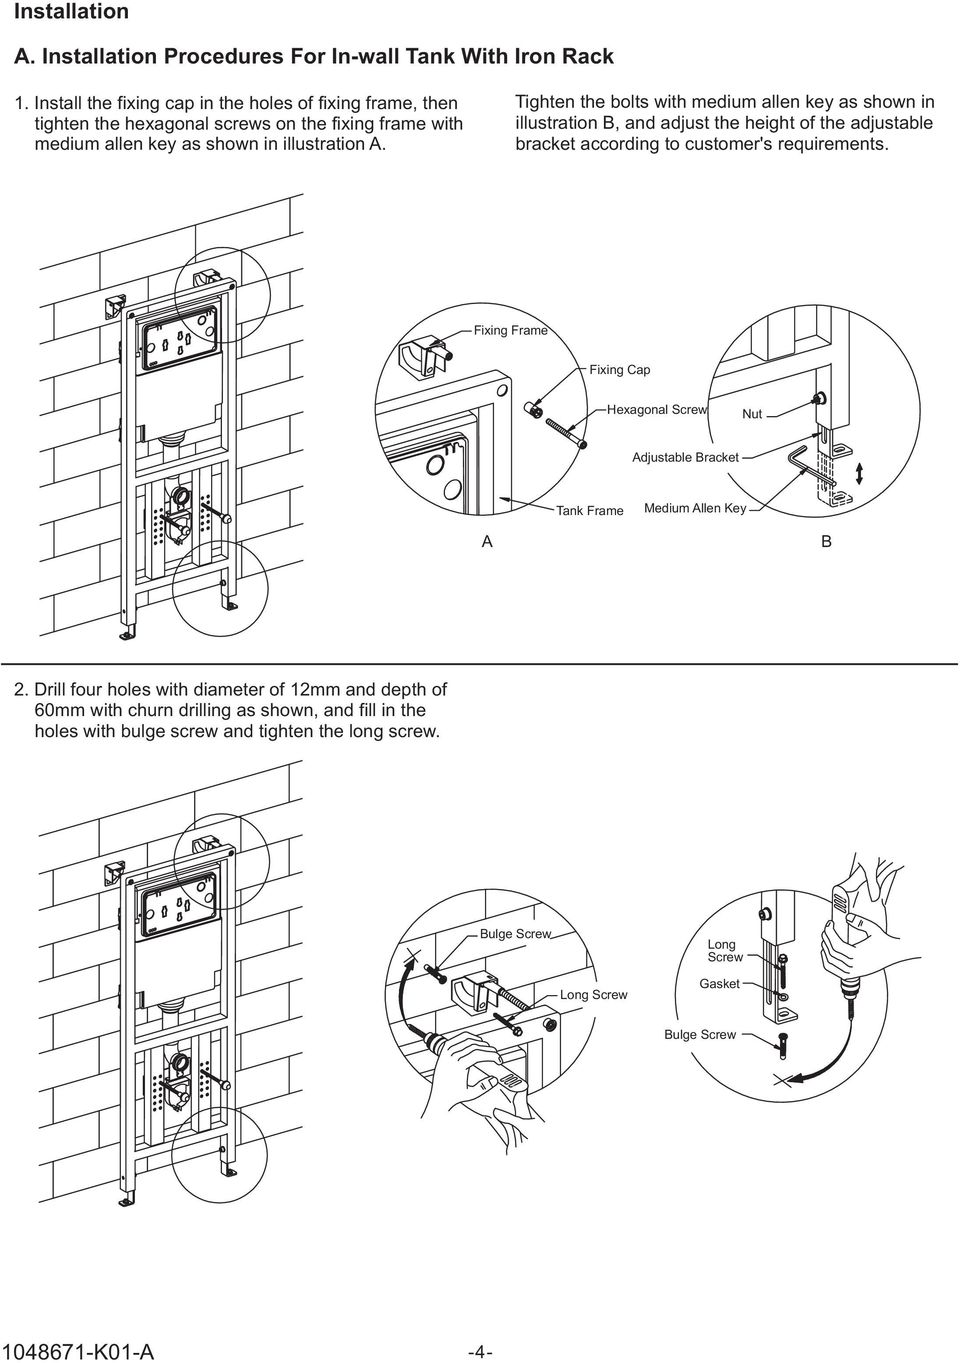 Tighten the bolts with medium allen key as shown in illustration B, and adjust the height of the adjustable bracket according to customer's requirements.